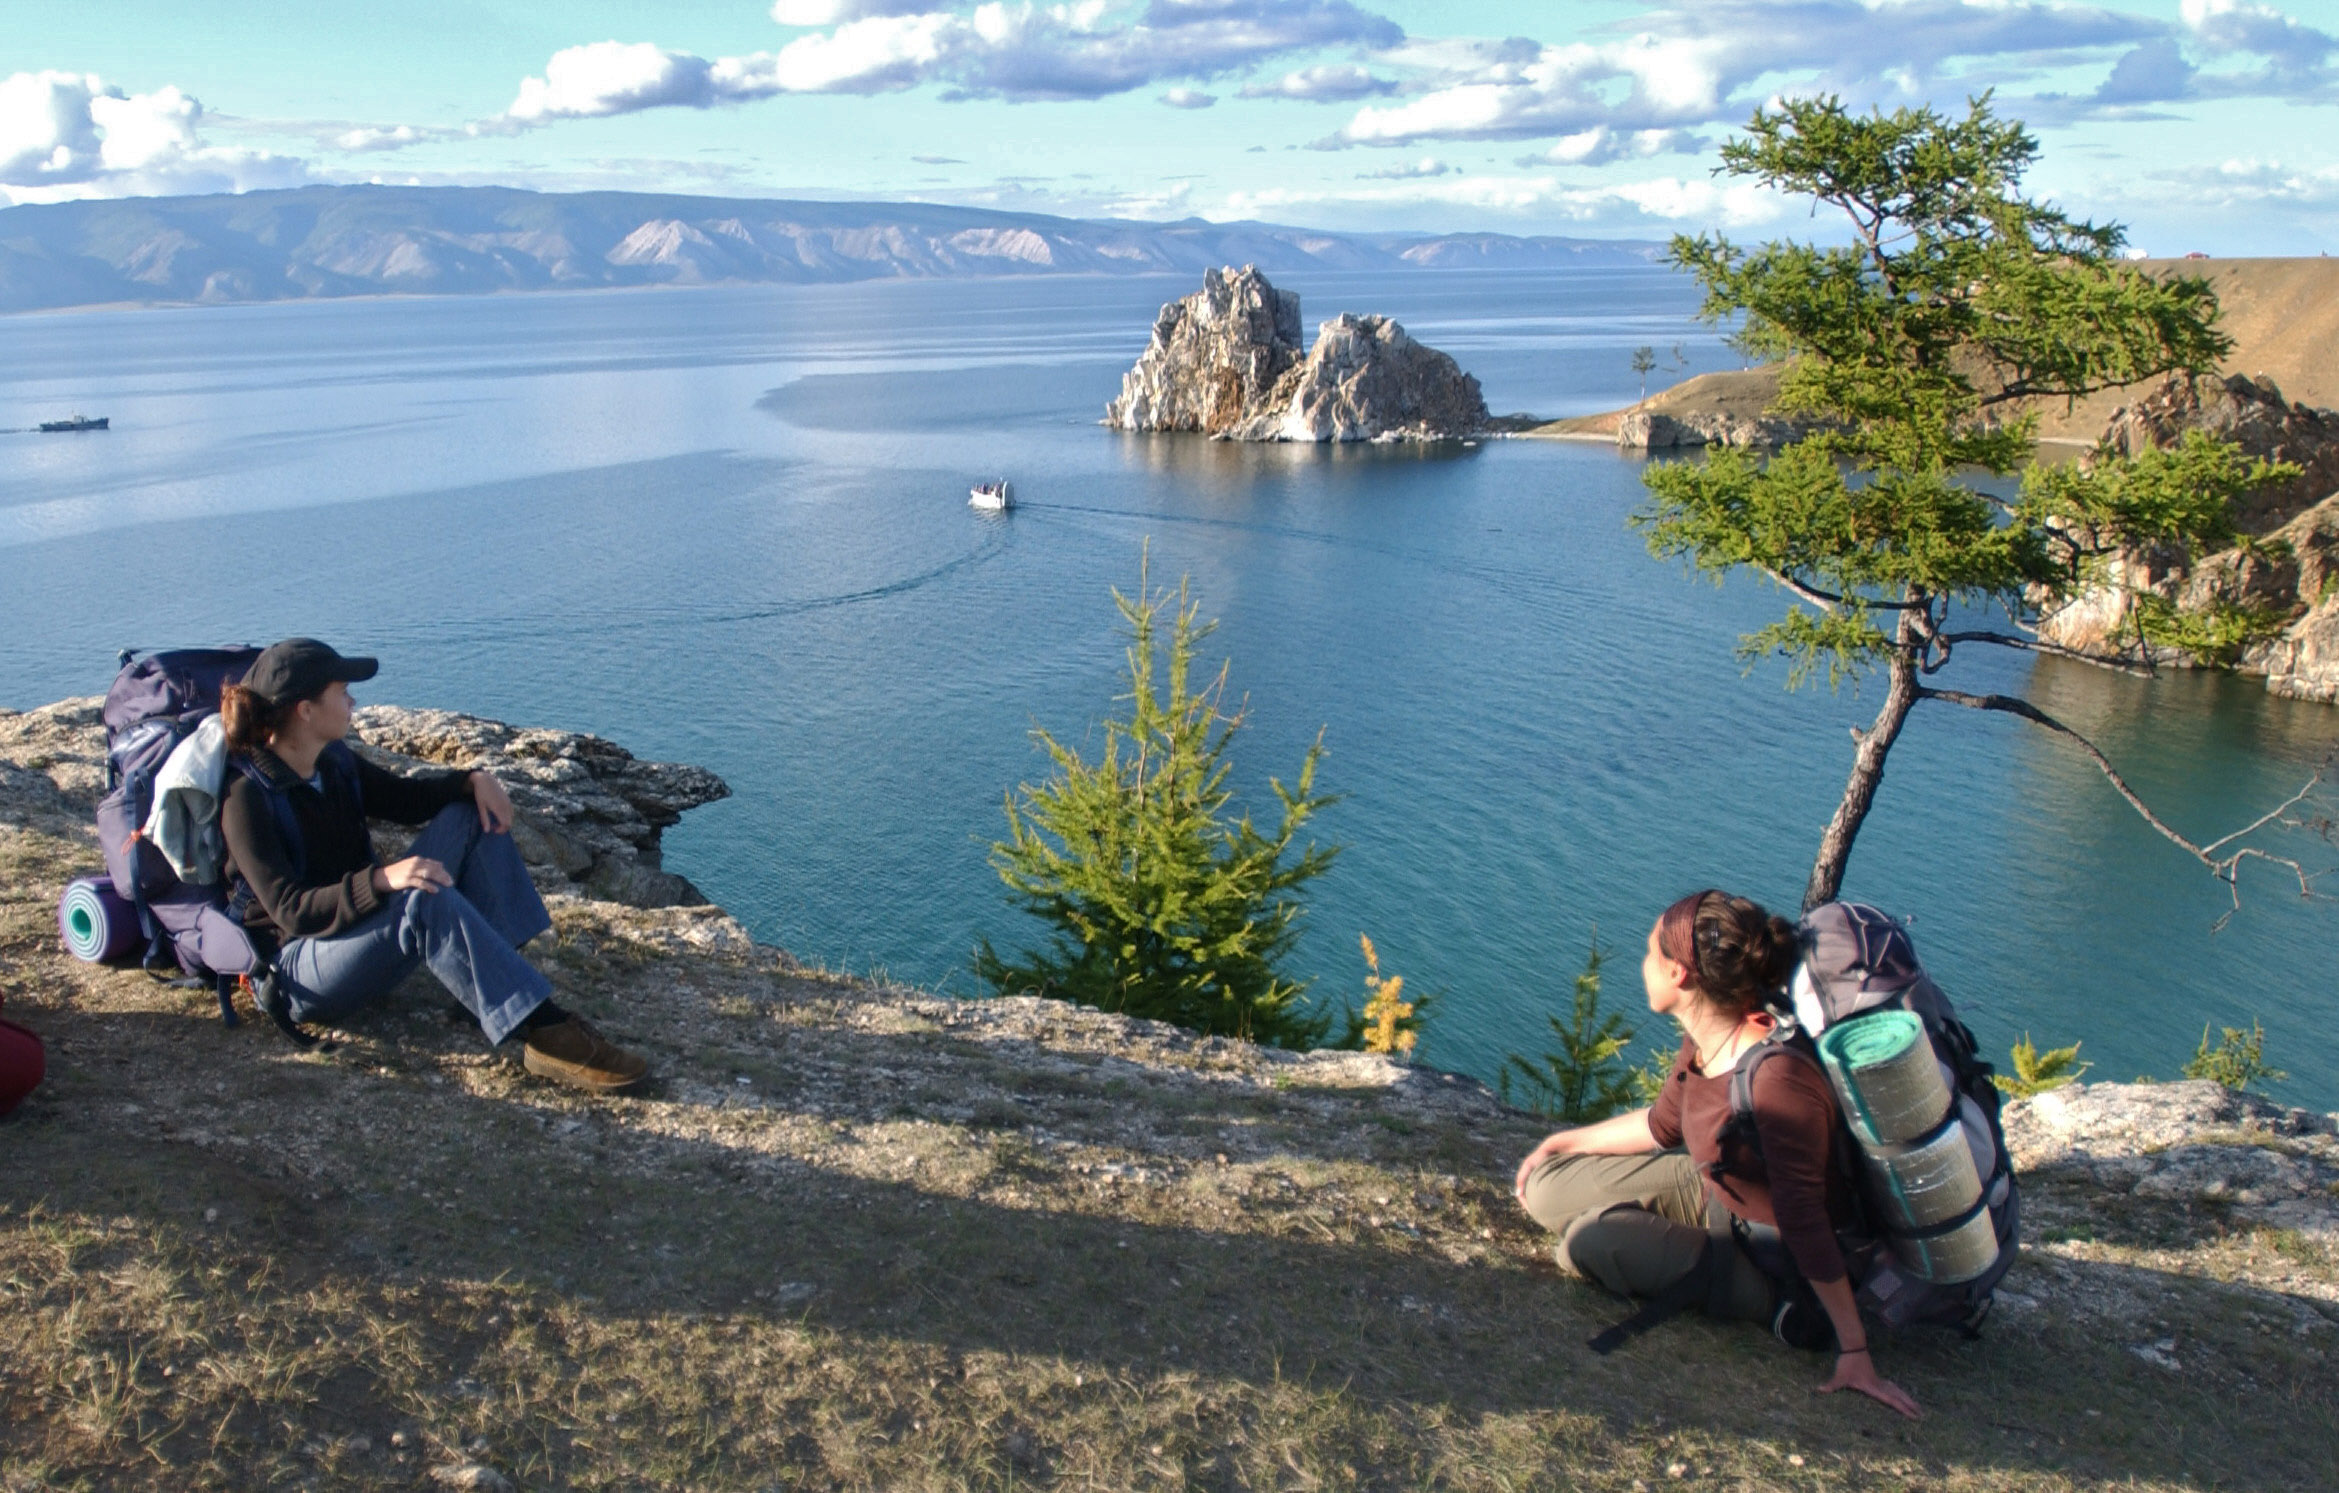 Lake Baikal could become new travel destination for Indians.